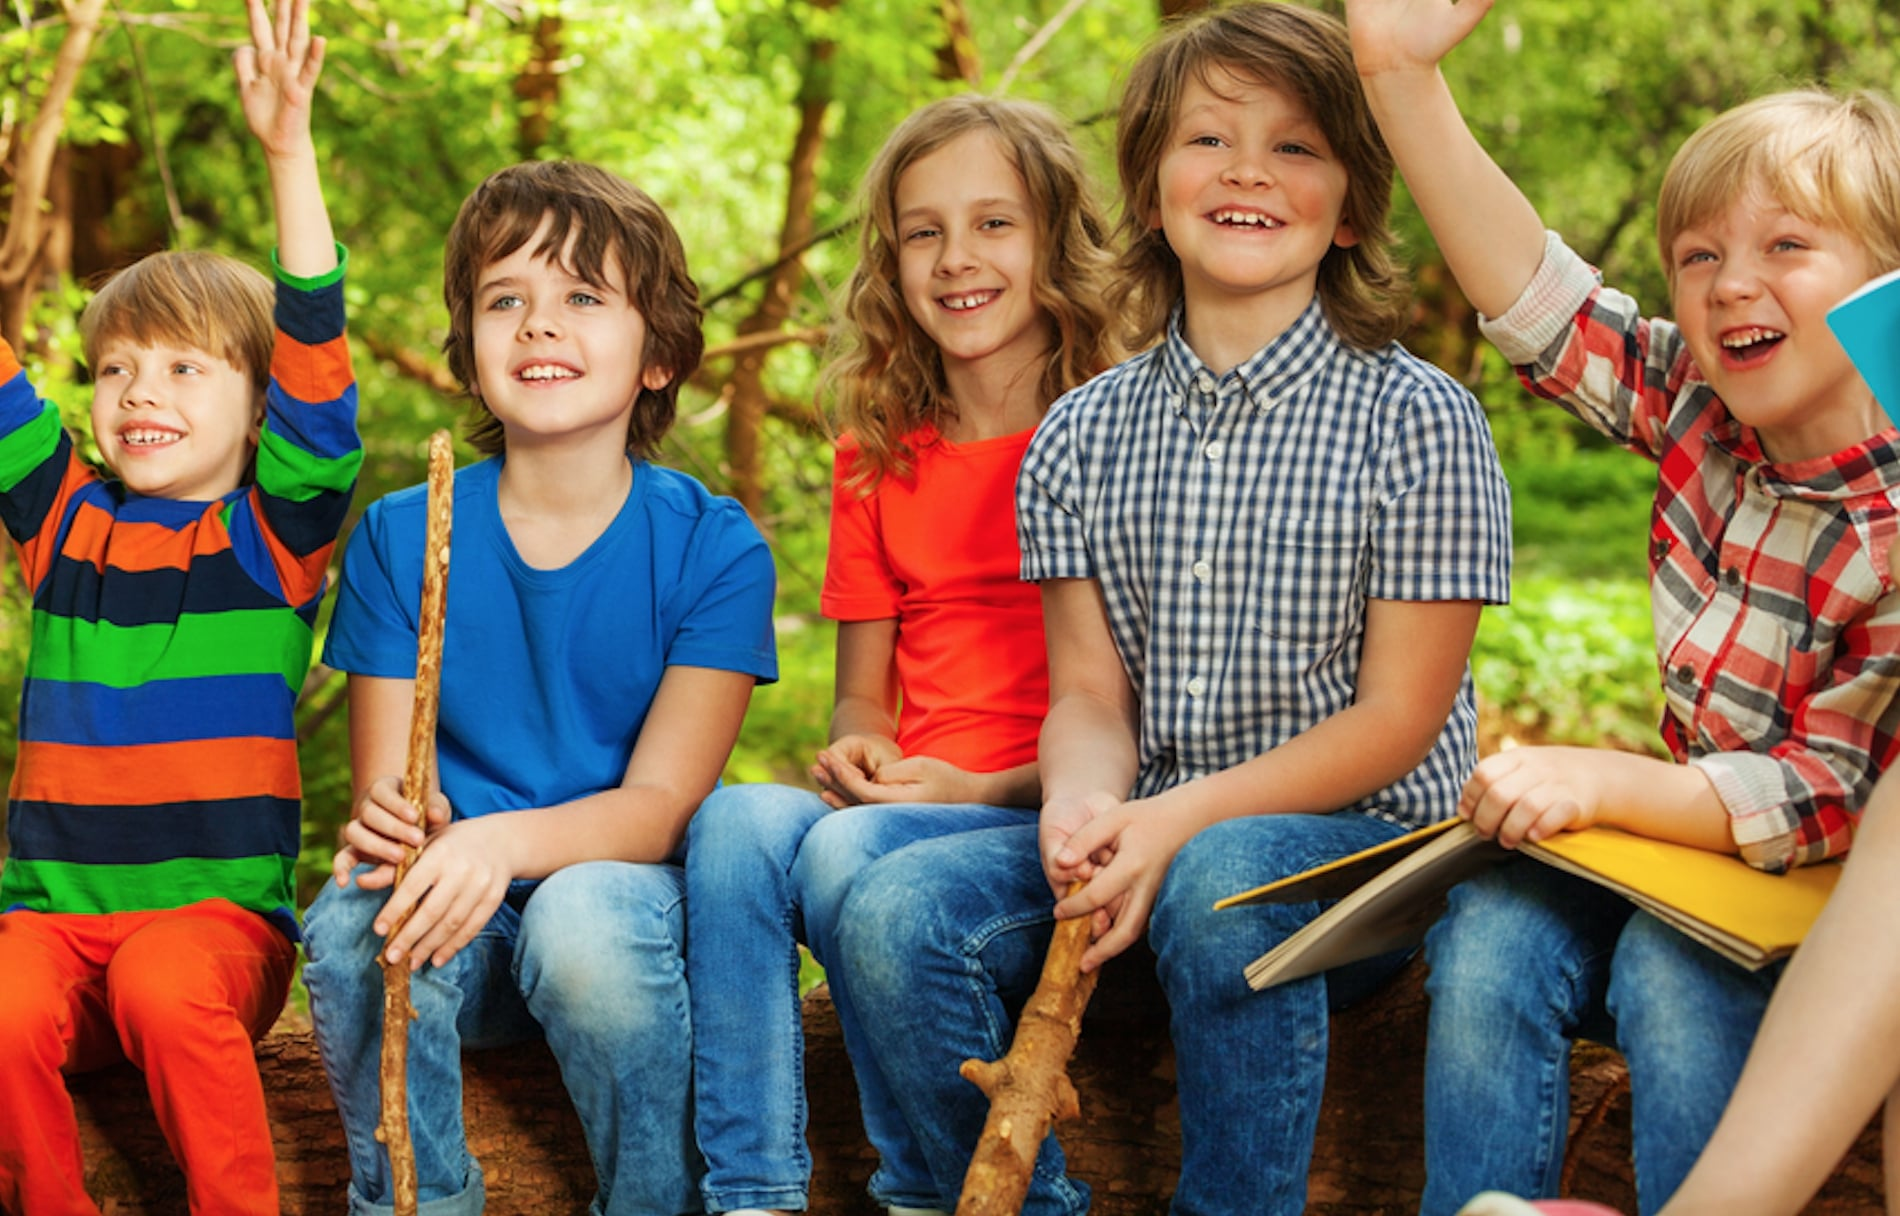 Behavior management at summer camps